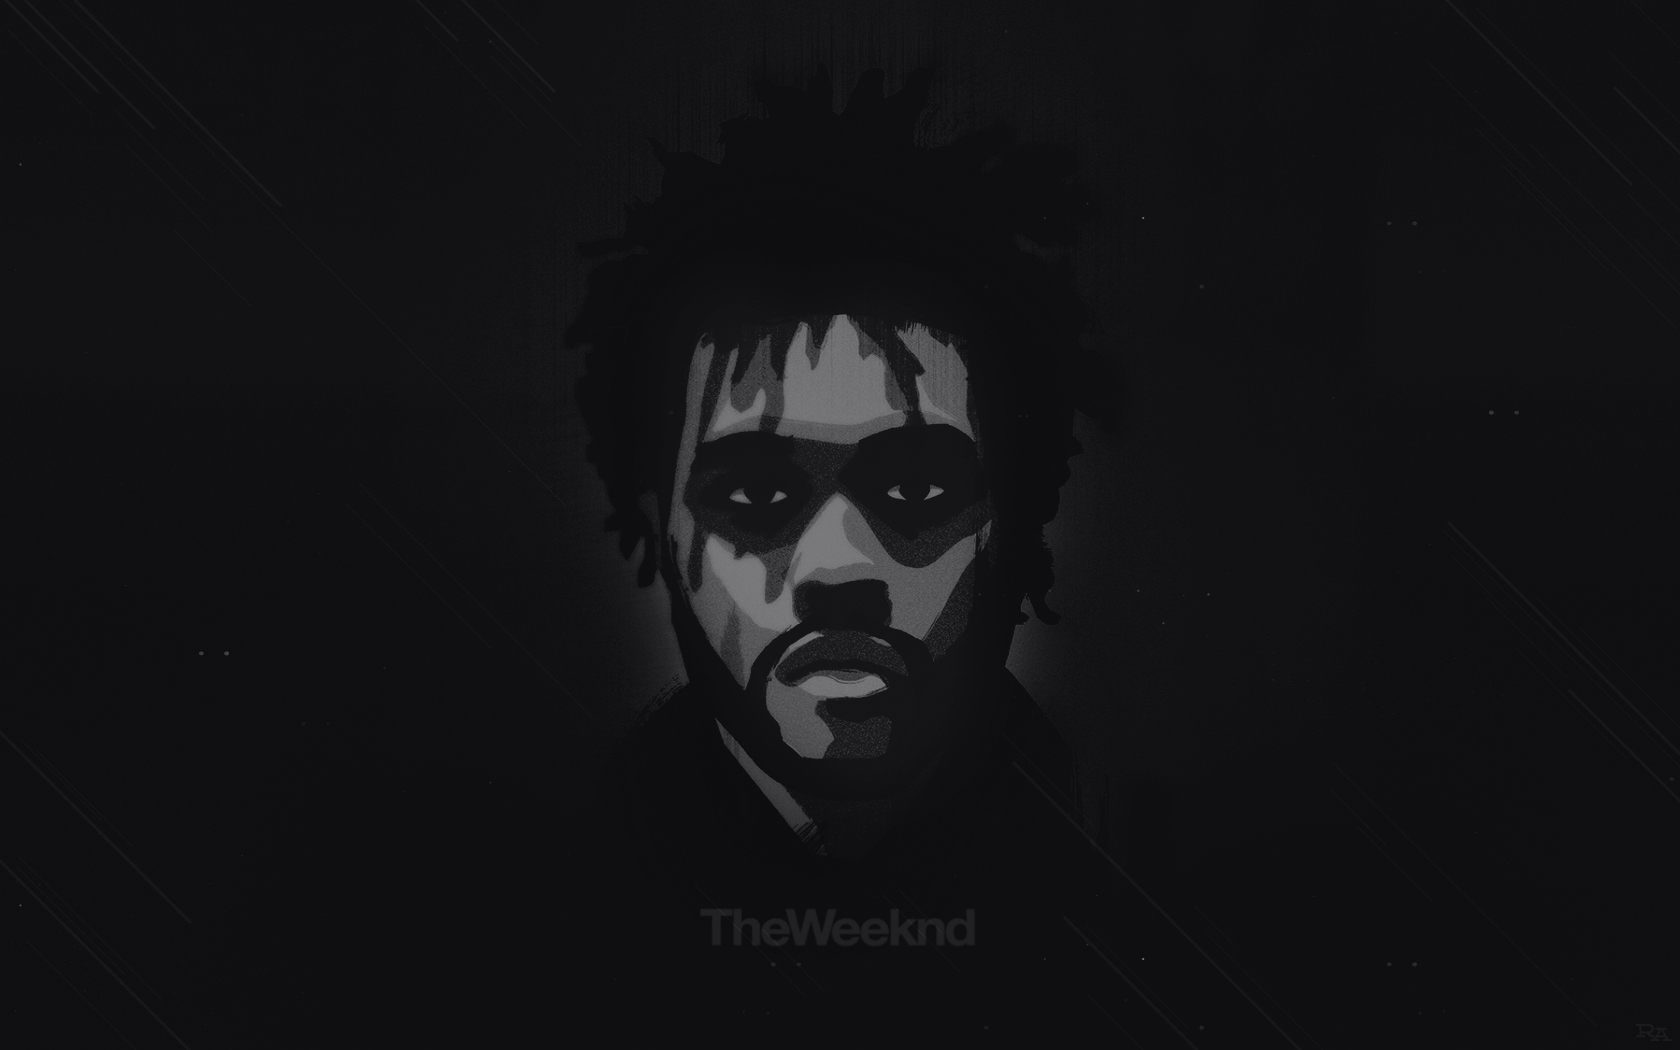 The Weeknd Laptop Wallpapers Top Free The Weeknd Laptop Backgrounds Wallpaperaccess